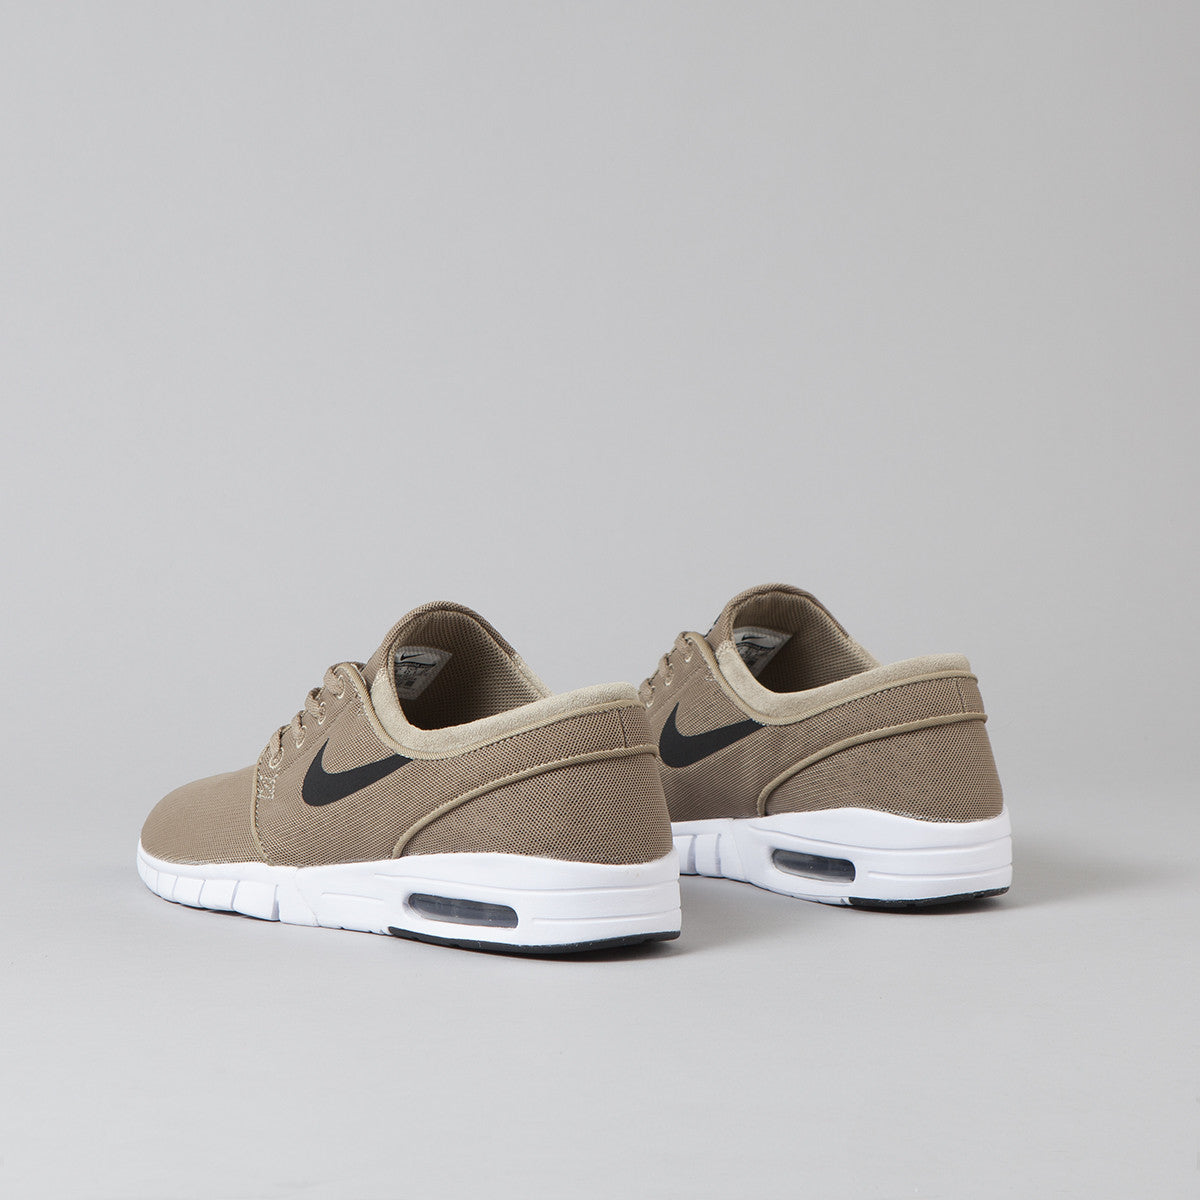 Nike SB Stefan Janoski Max Shoes Khaki / Black - White